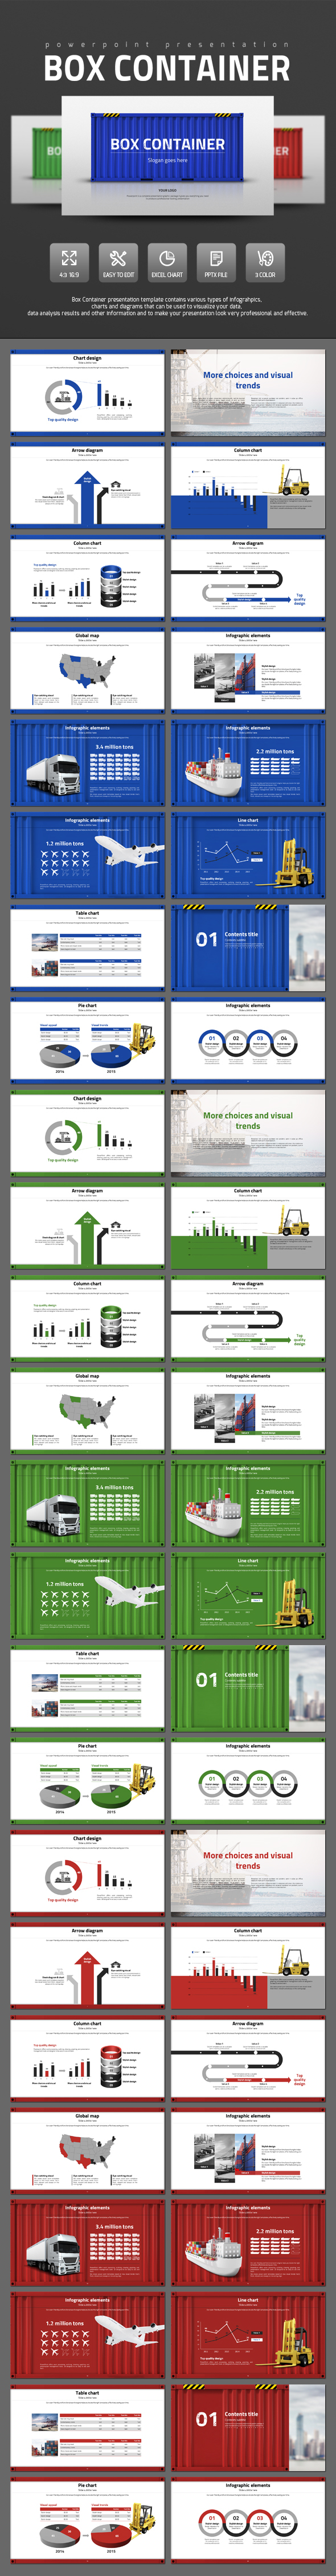 Box Container - Business PowerPoint Templates